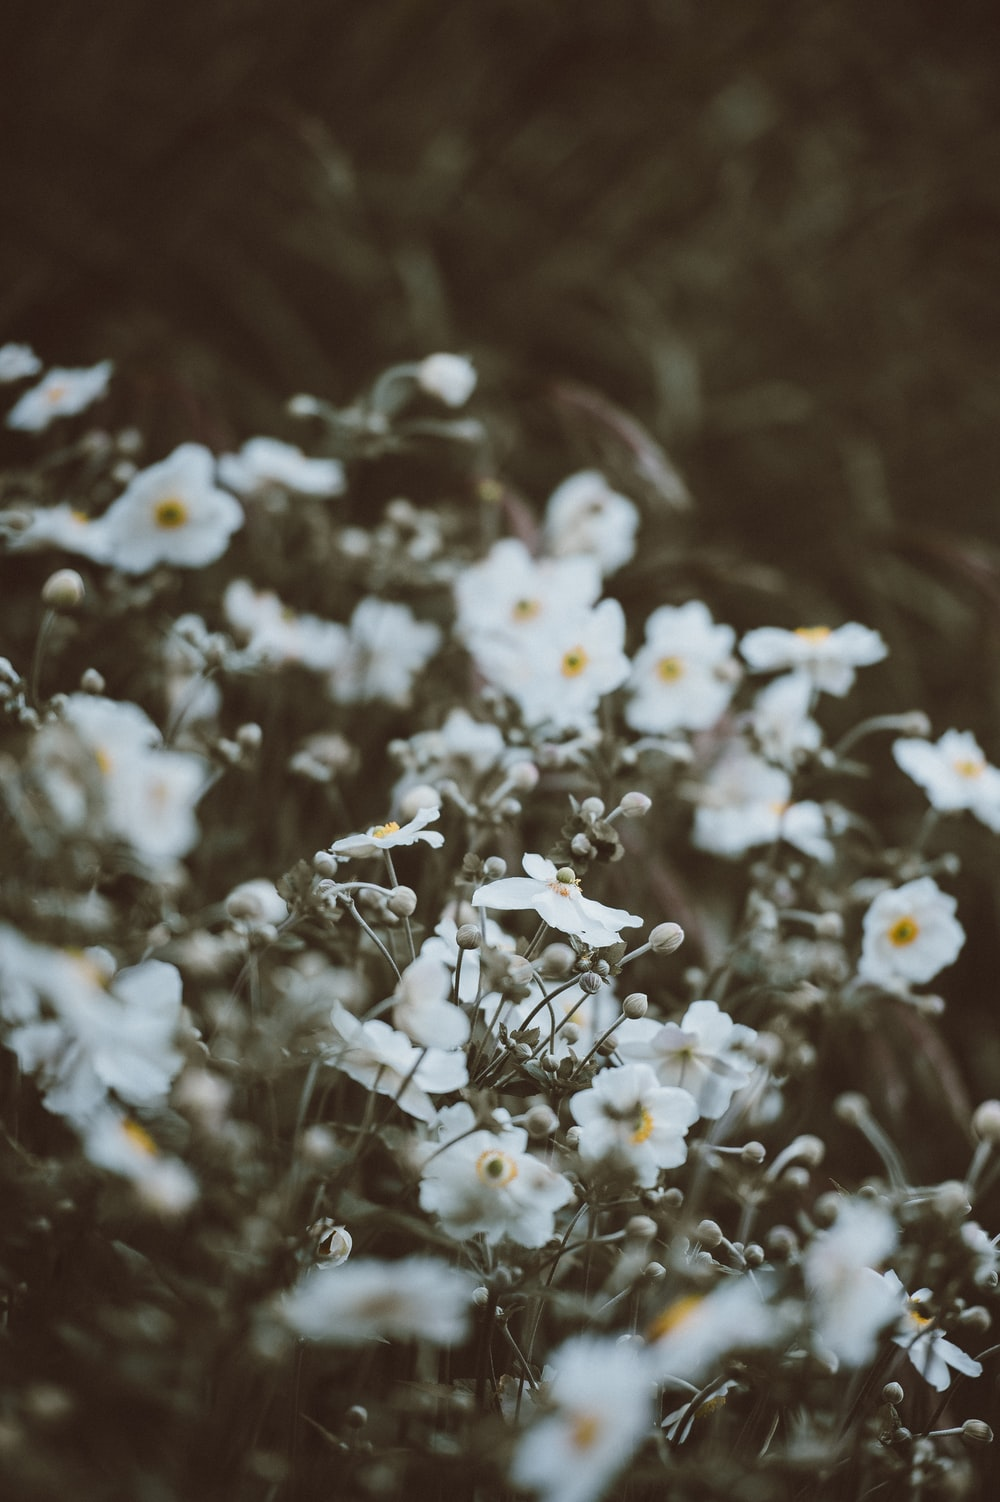 white petaled flowers in focus photography at daytime